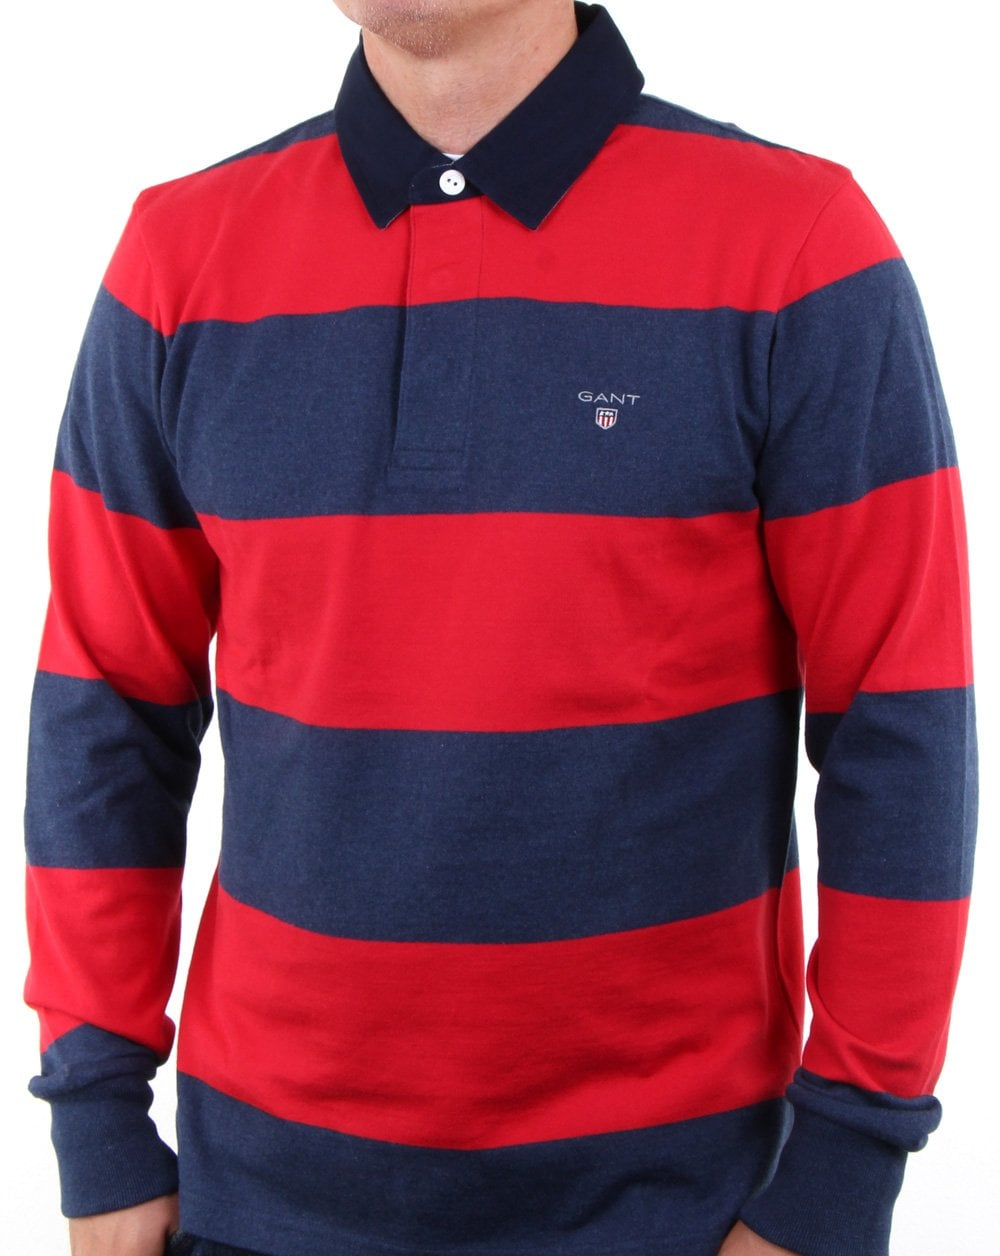 Clothes, Shoes & Accessories Helpful Gant Xl Rugby Top